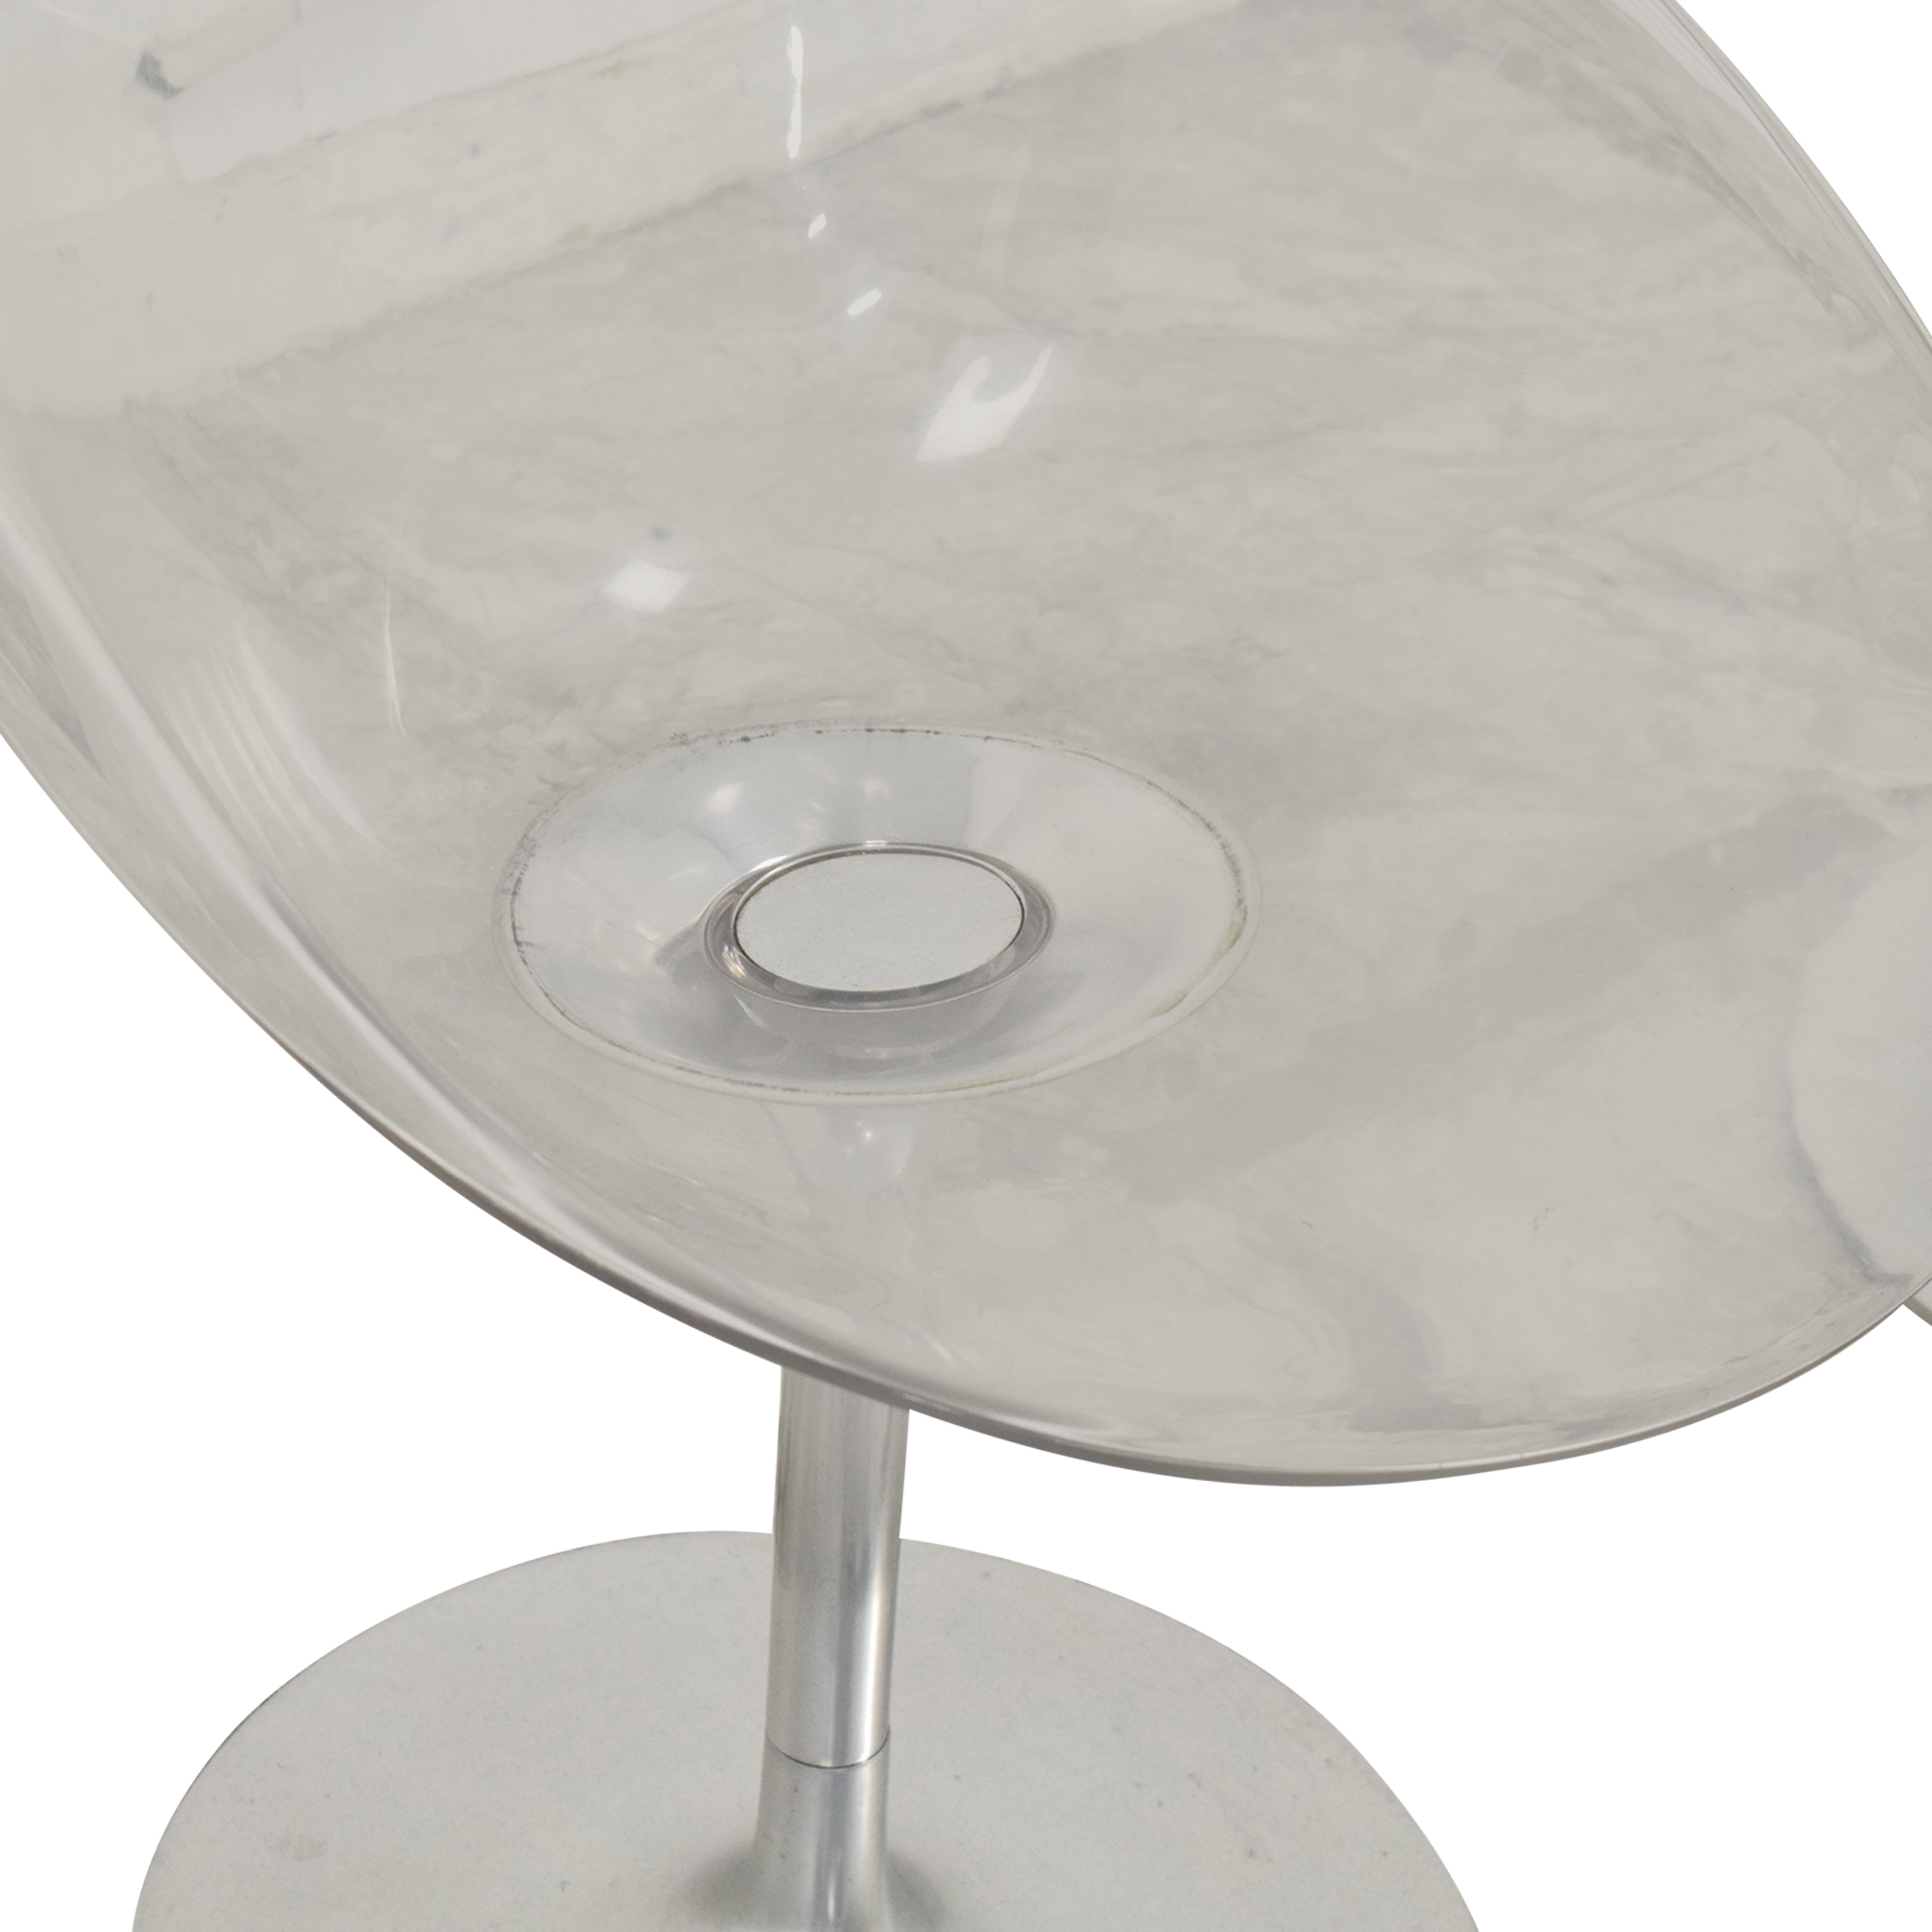 Kartell by Philippe Starck Ero s  Swivel Chairs / Dining Chairs